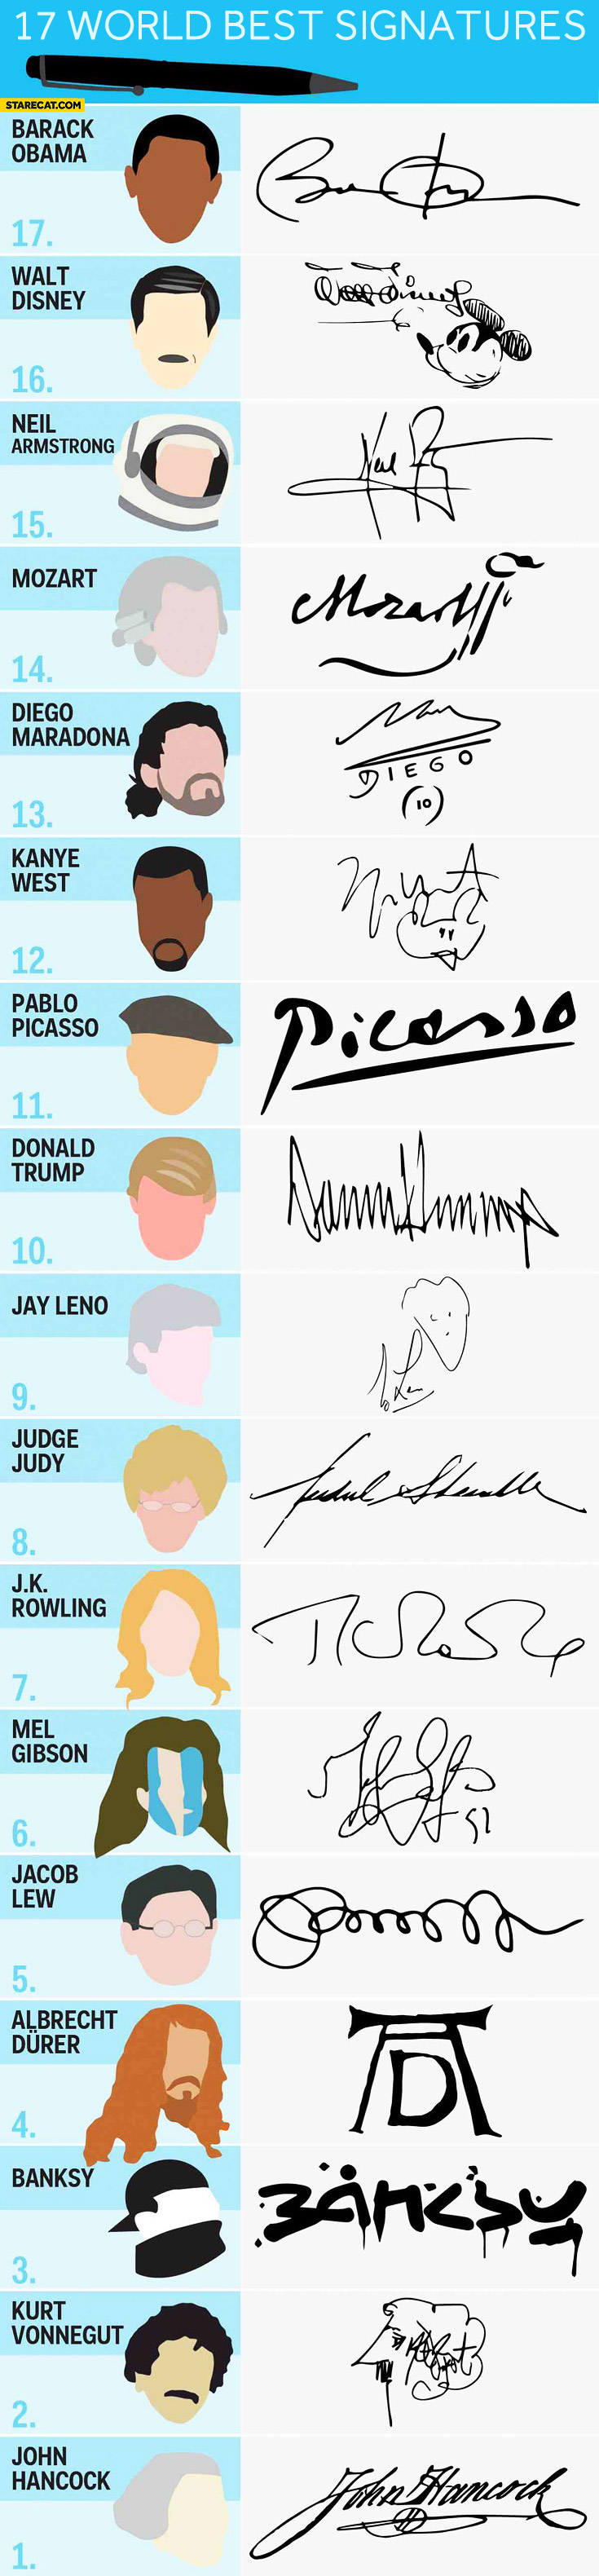 17 world best signatures